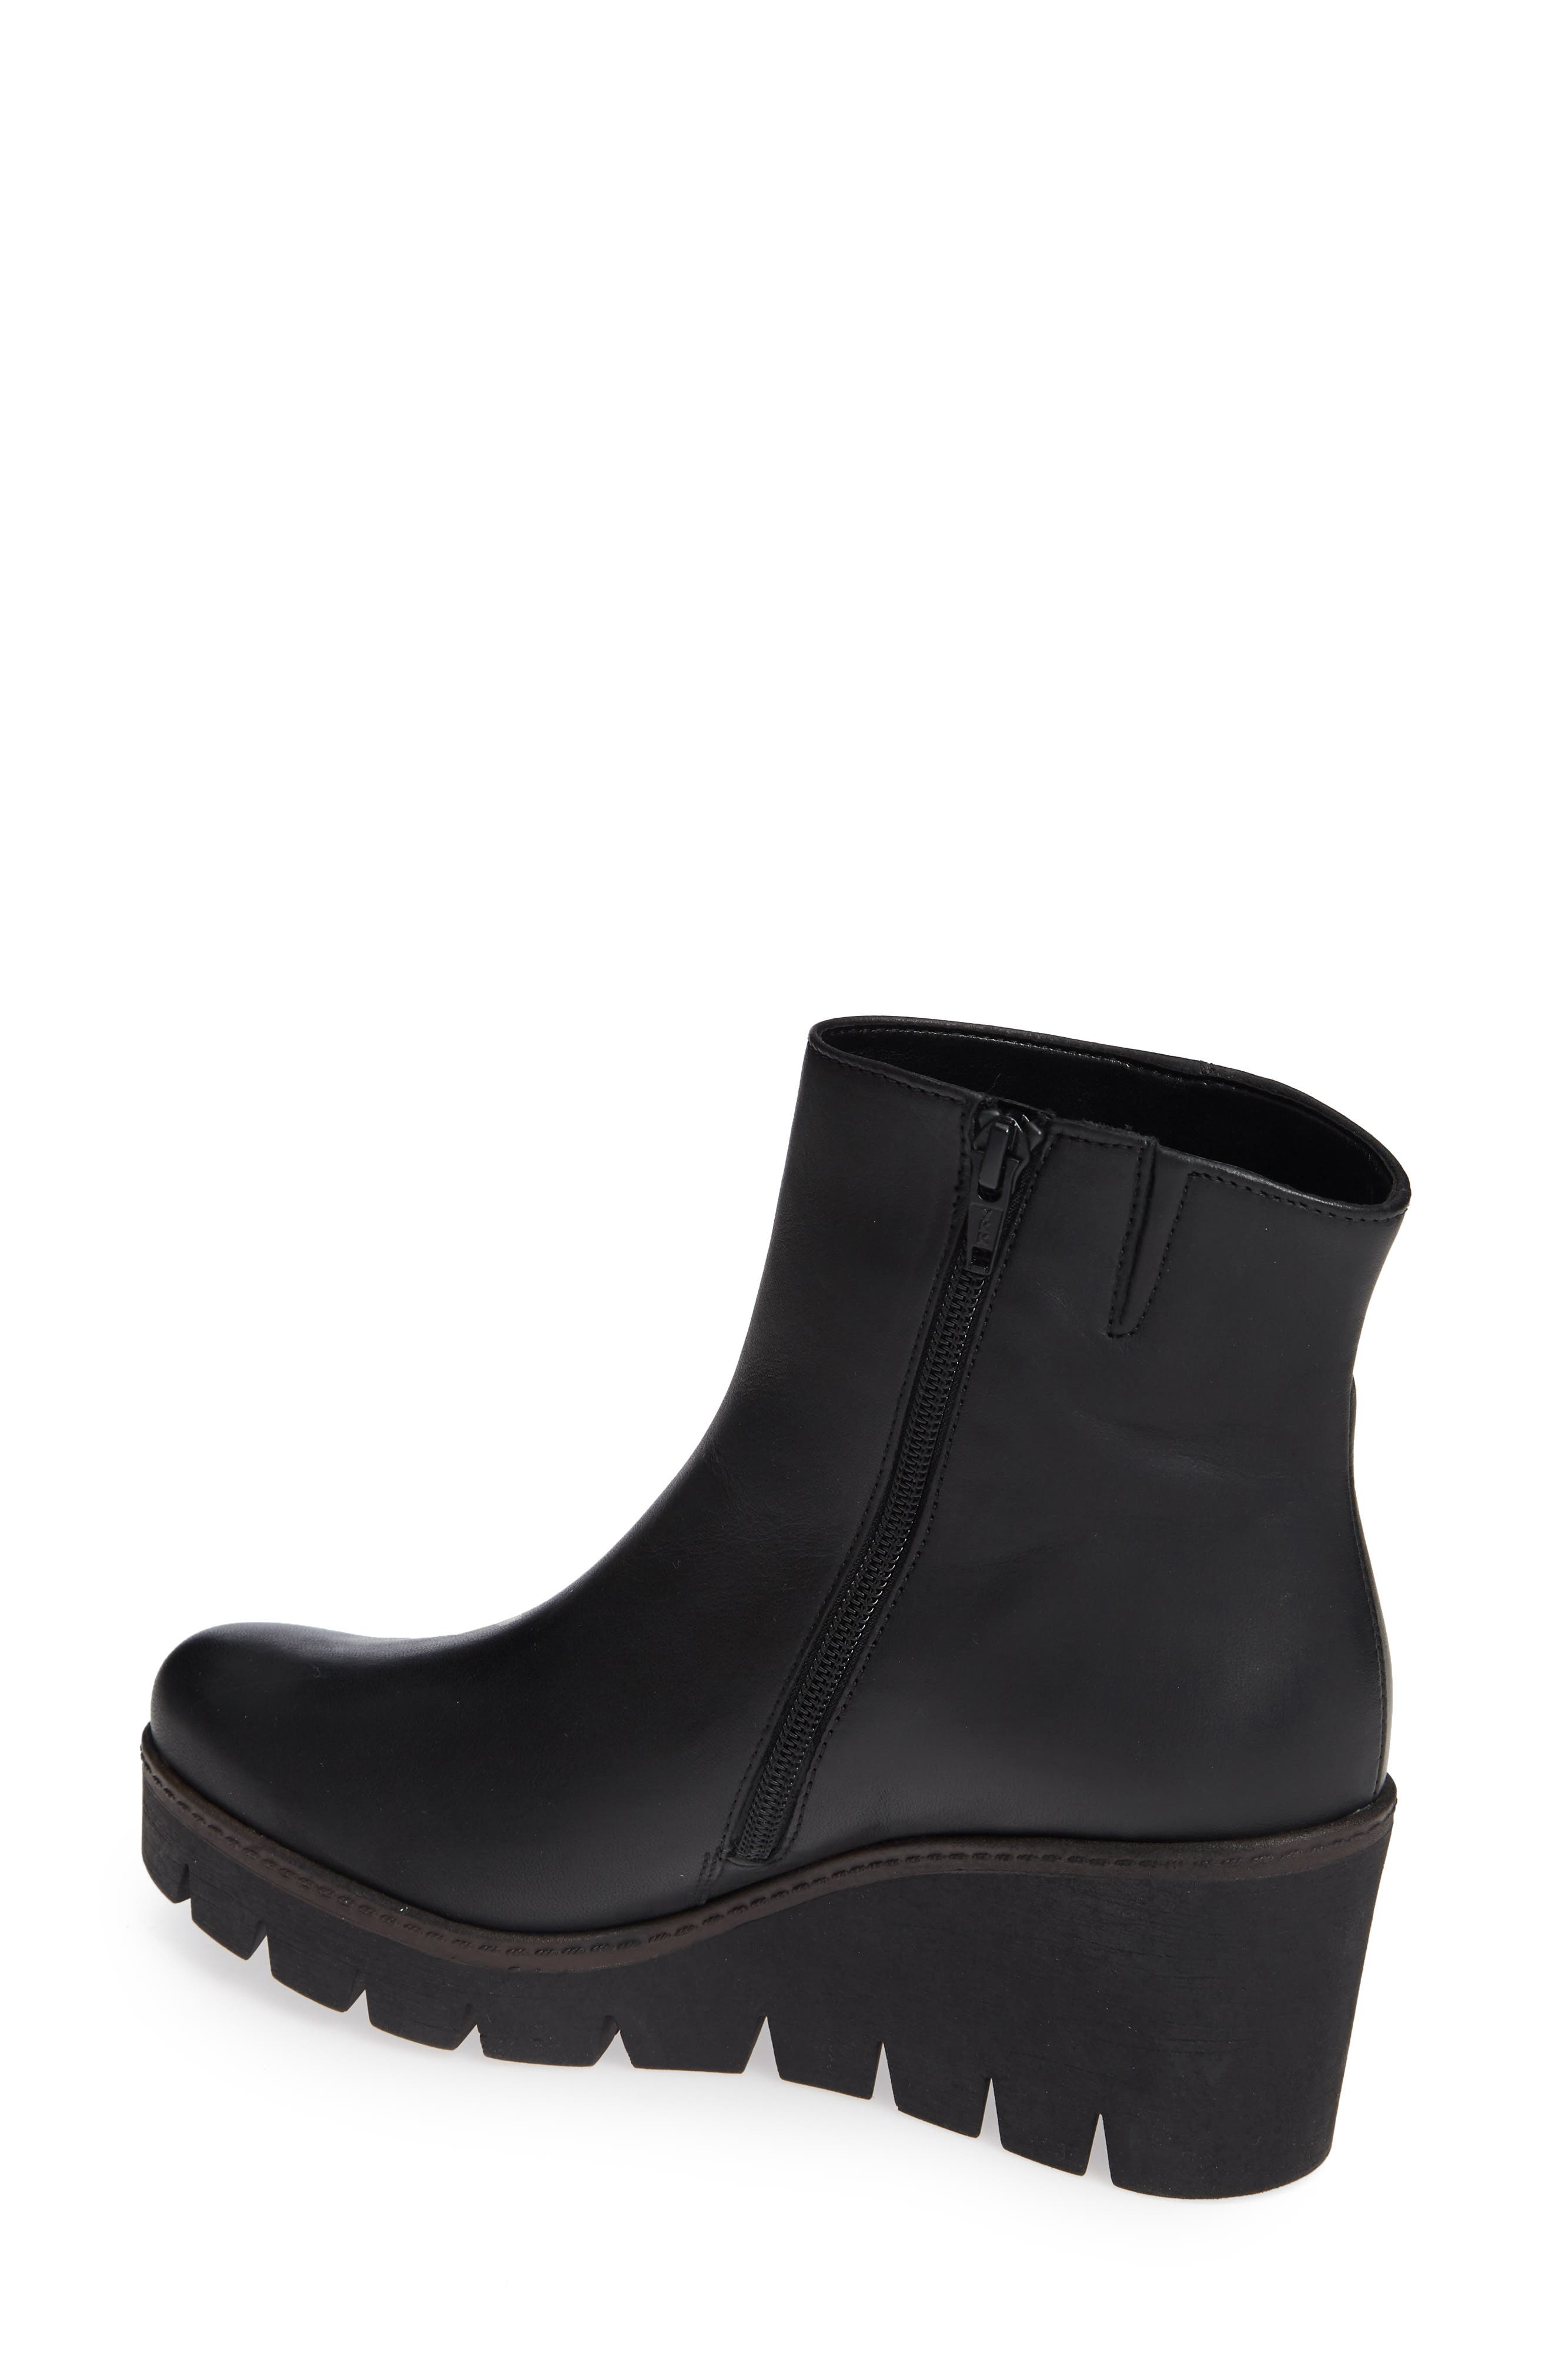 Friendly Wedge Bootie,                             Alternate thumbnail 2, color,                             BLACK LEATHER